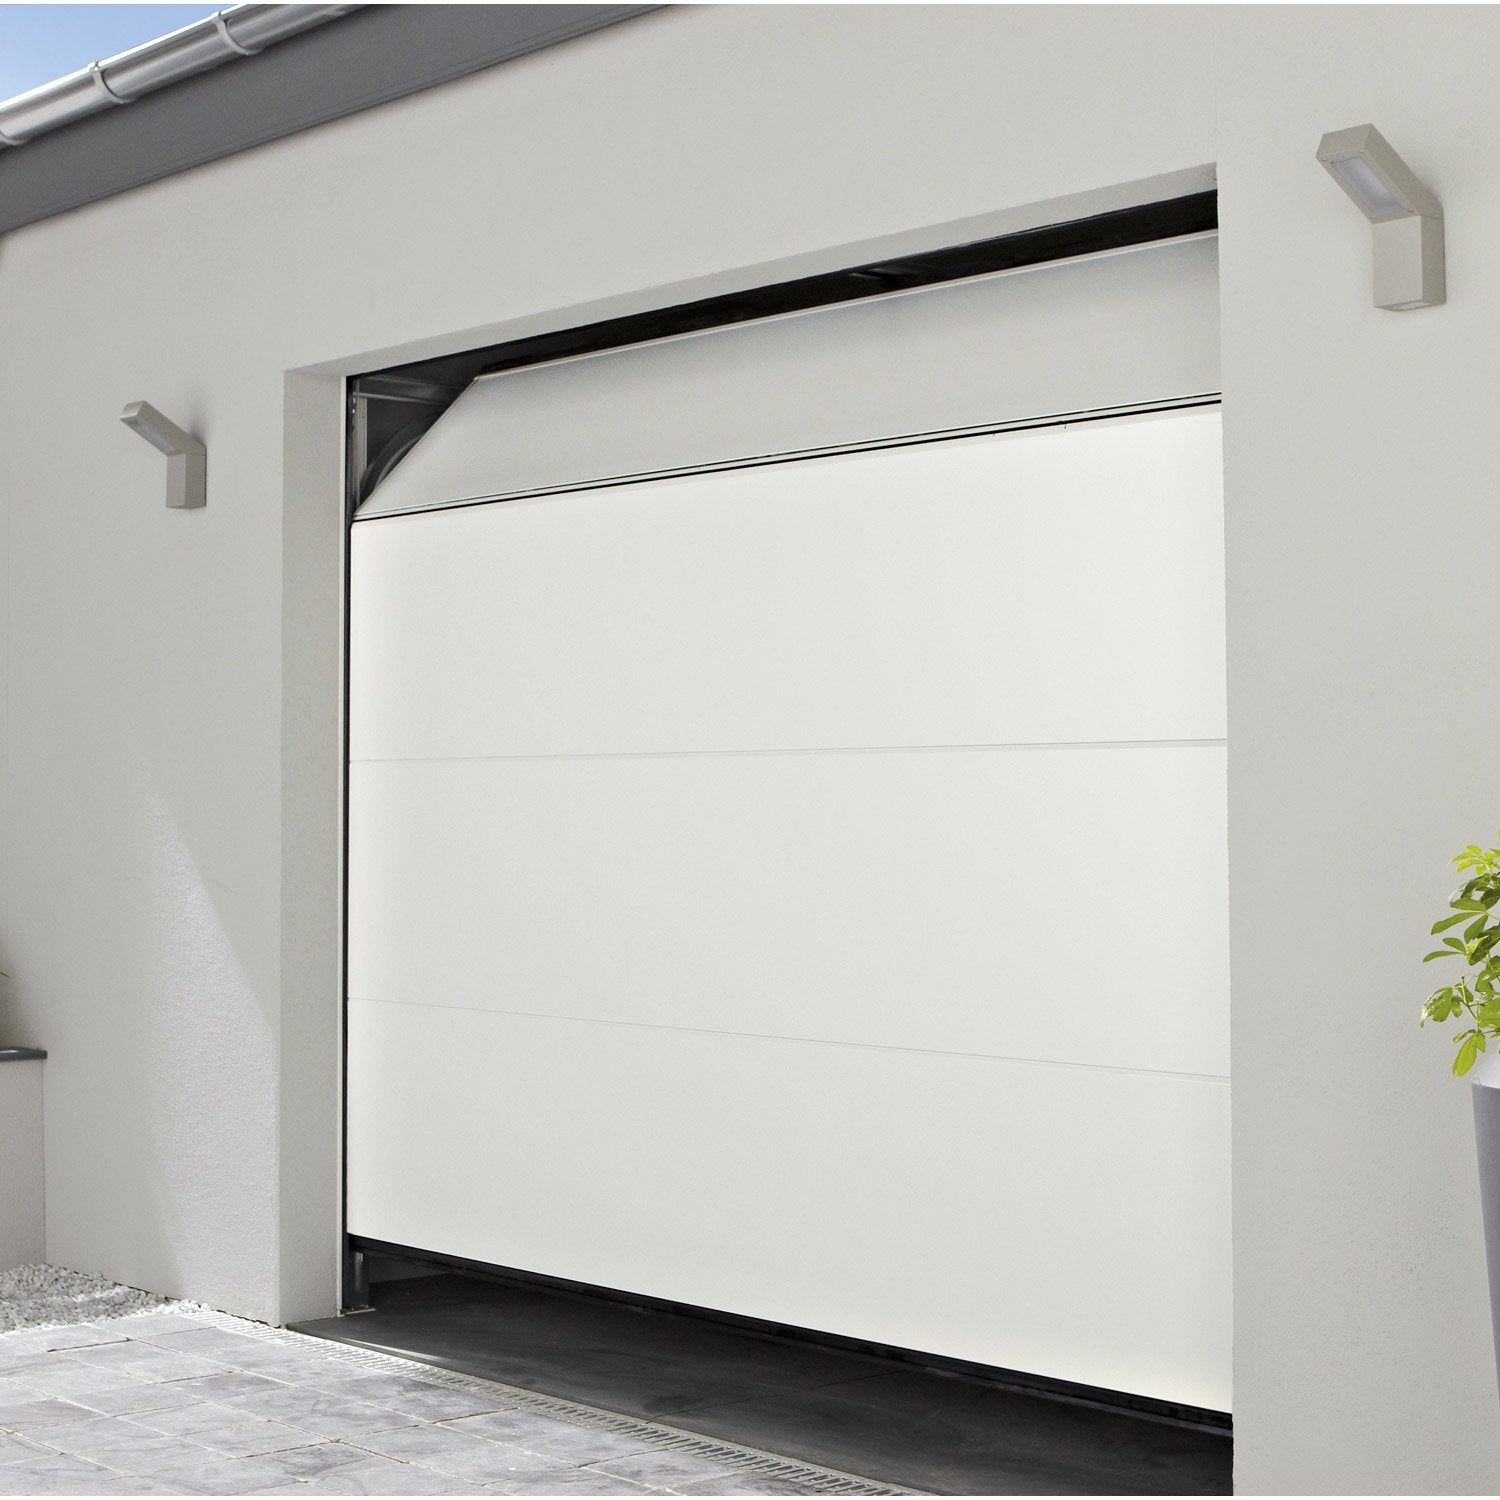 Porte de garage sectionelle motoris e chypre rainures for Porte de garage sectionnelle 3 5 m